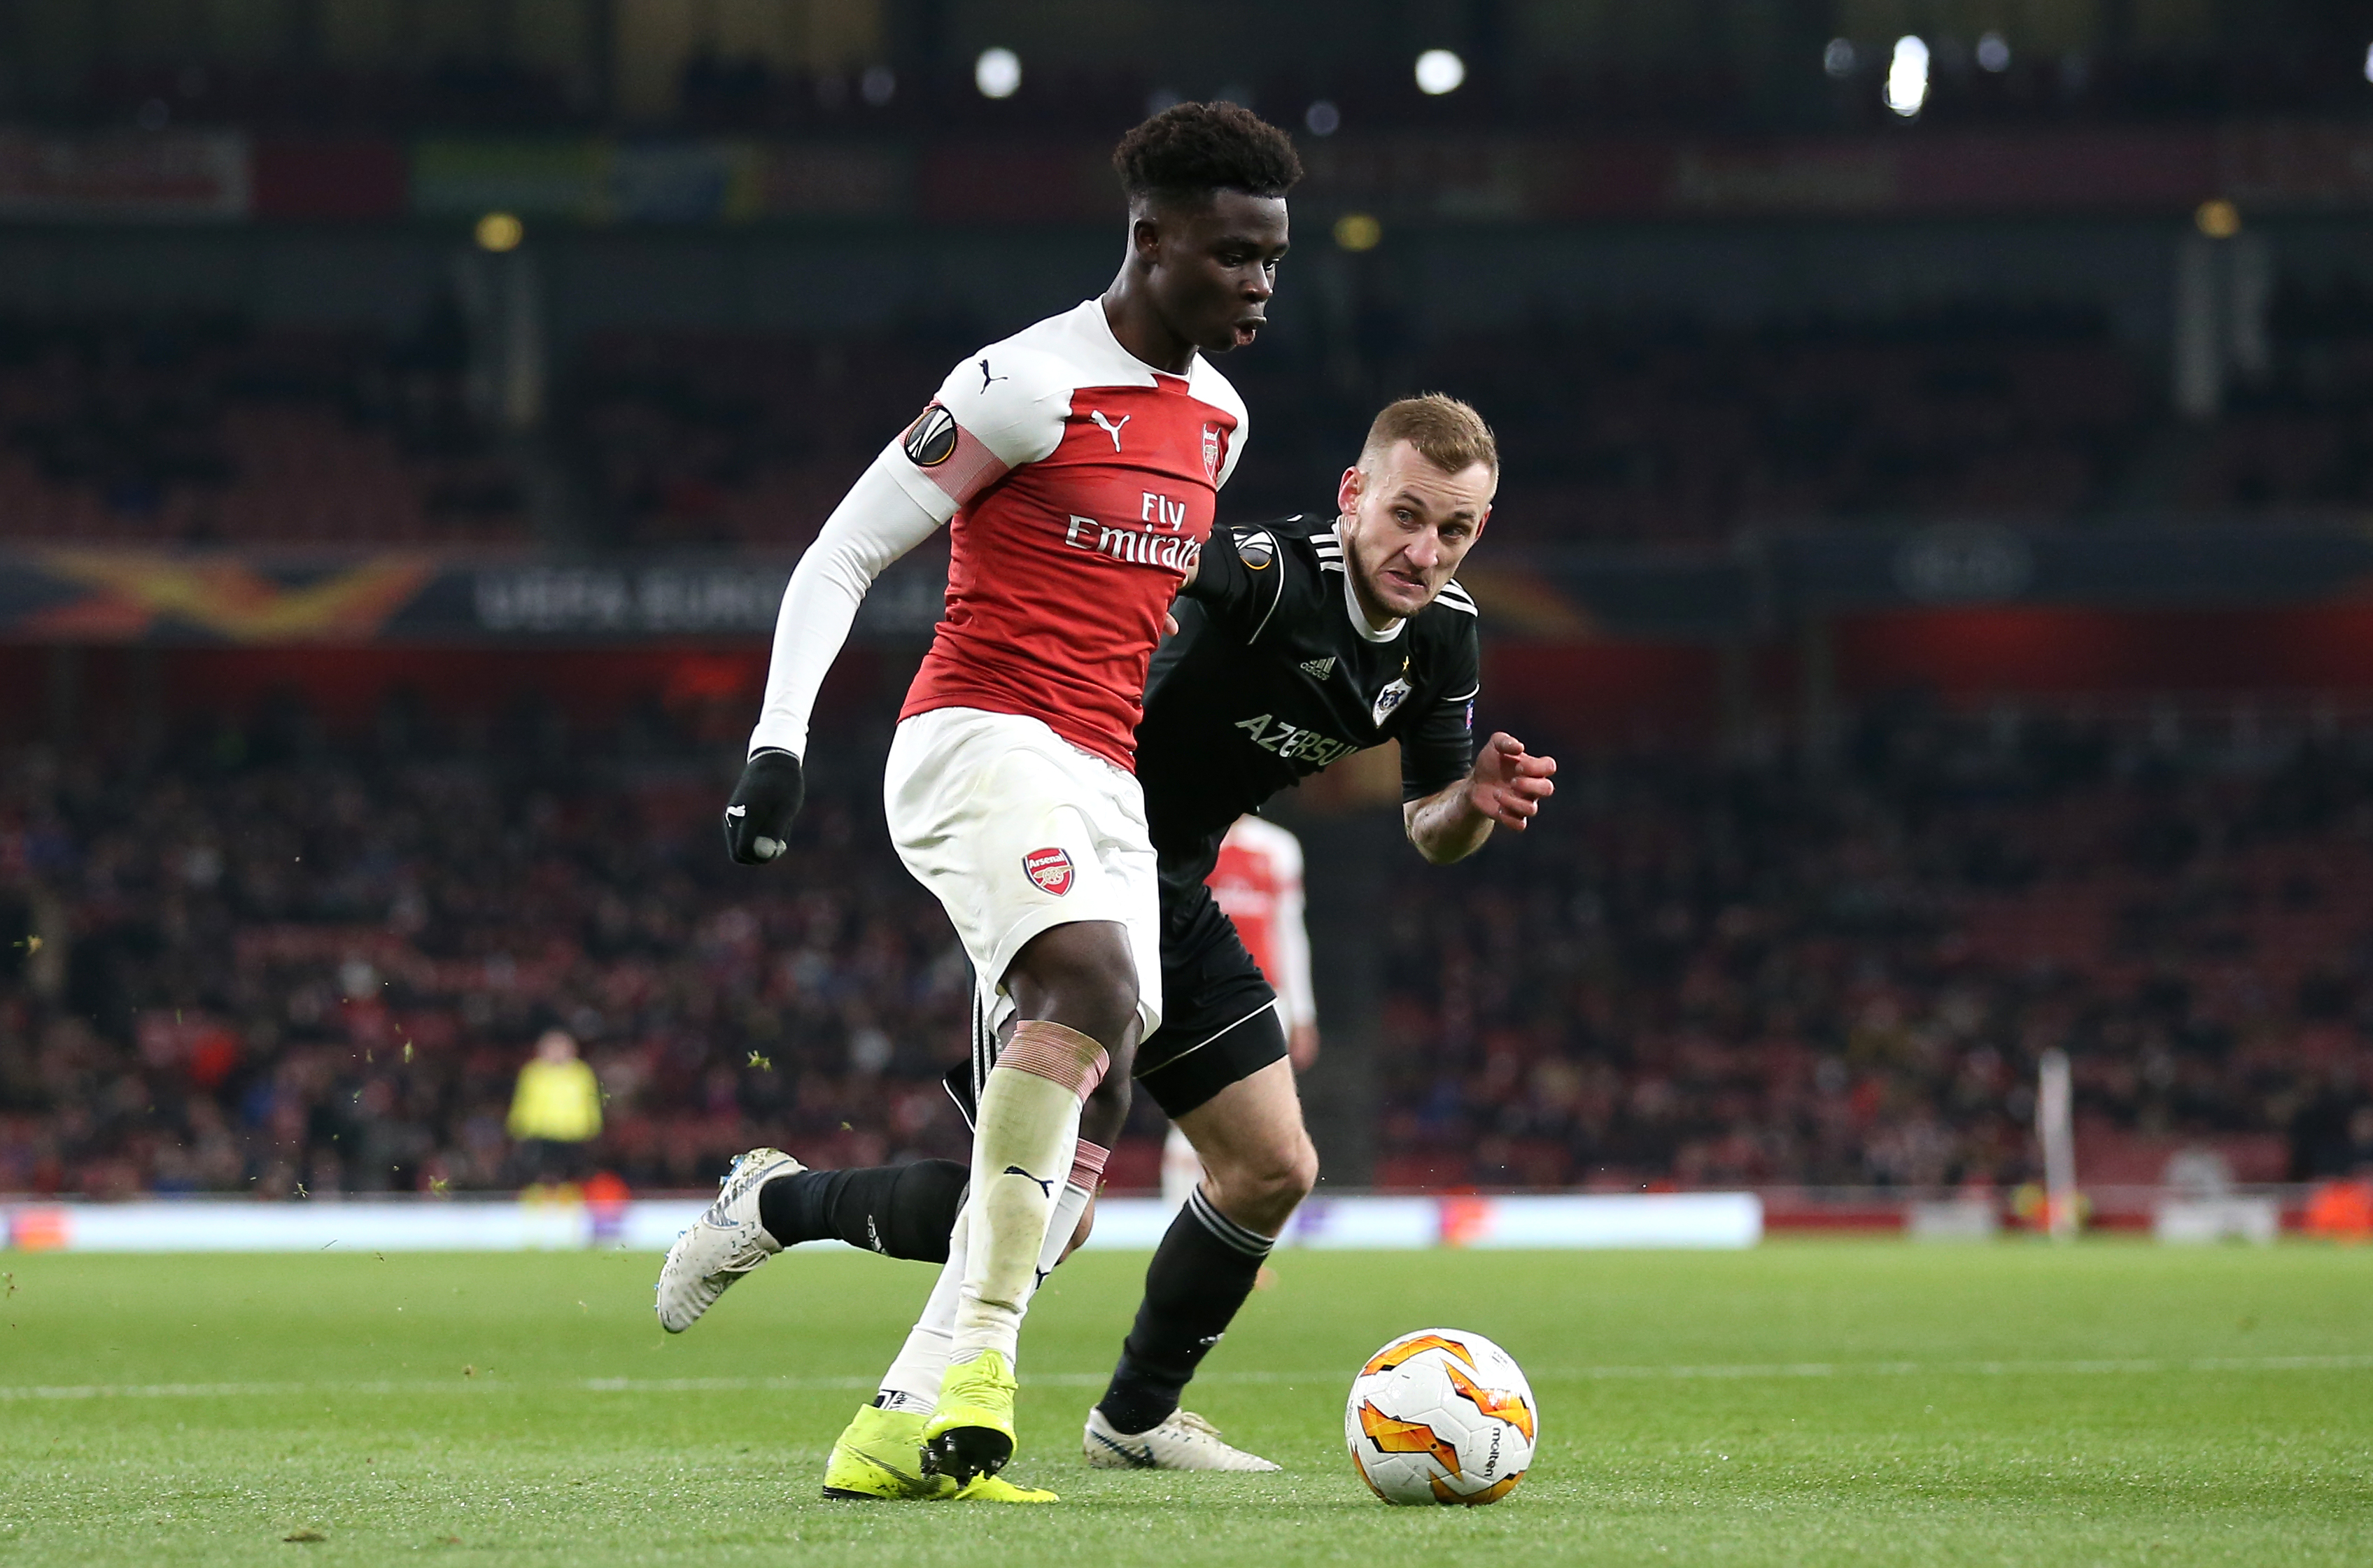 'I think he's the best young player in the league' - Arsenal star hails Saka following recent performances